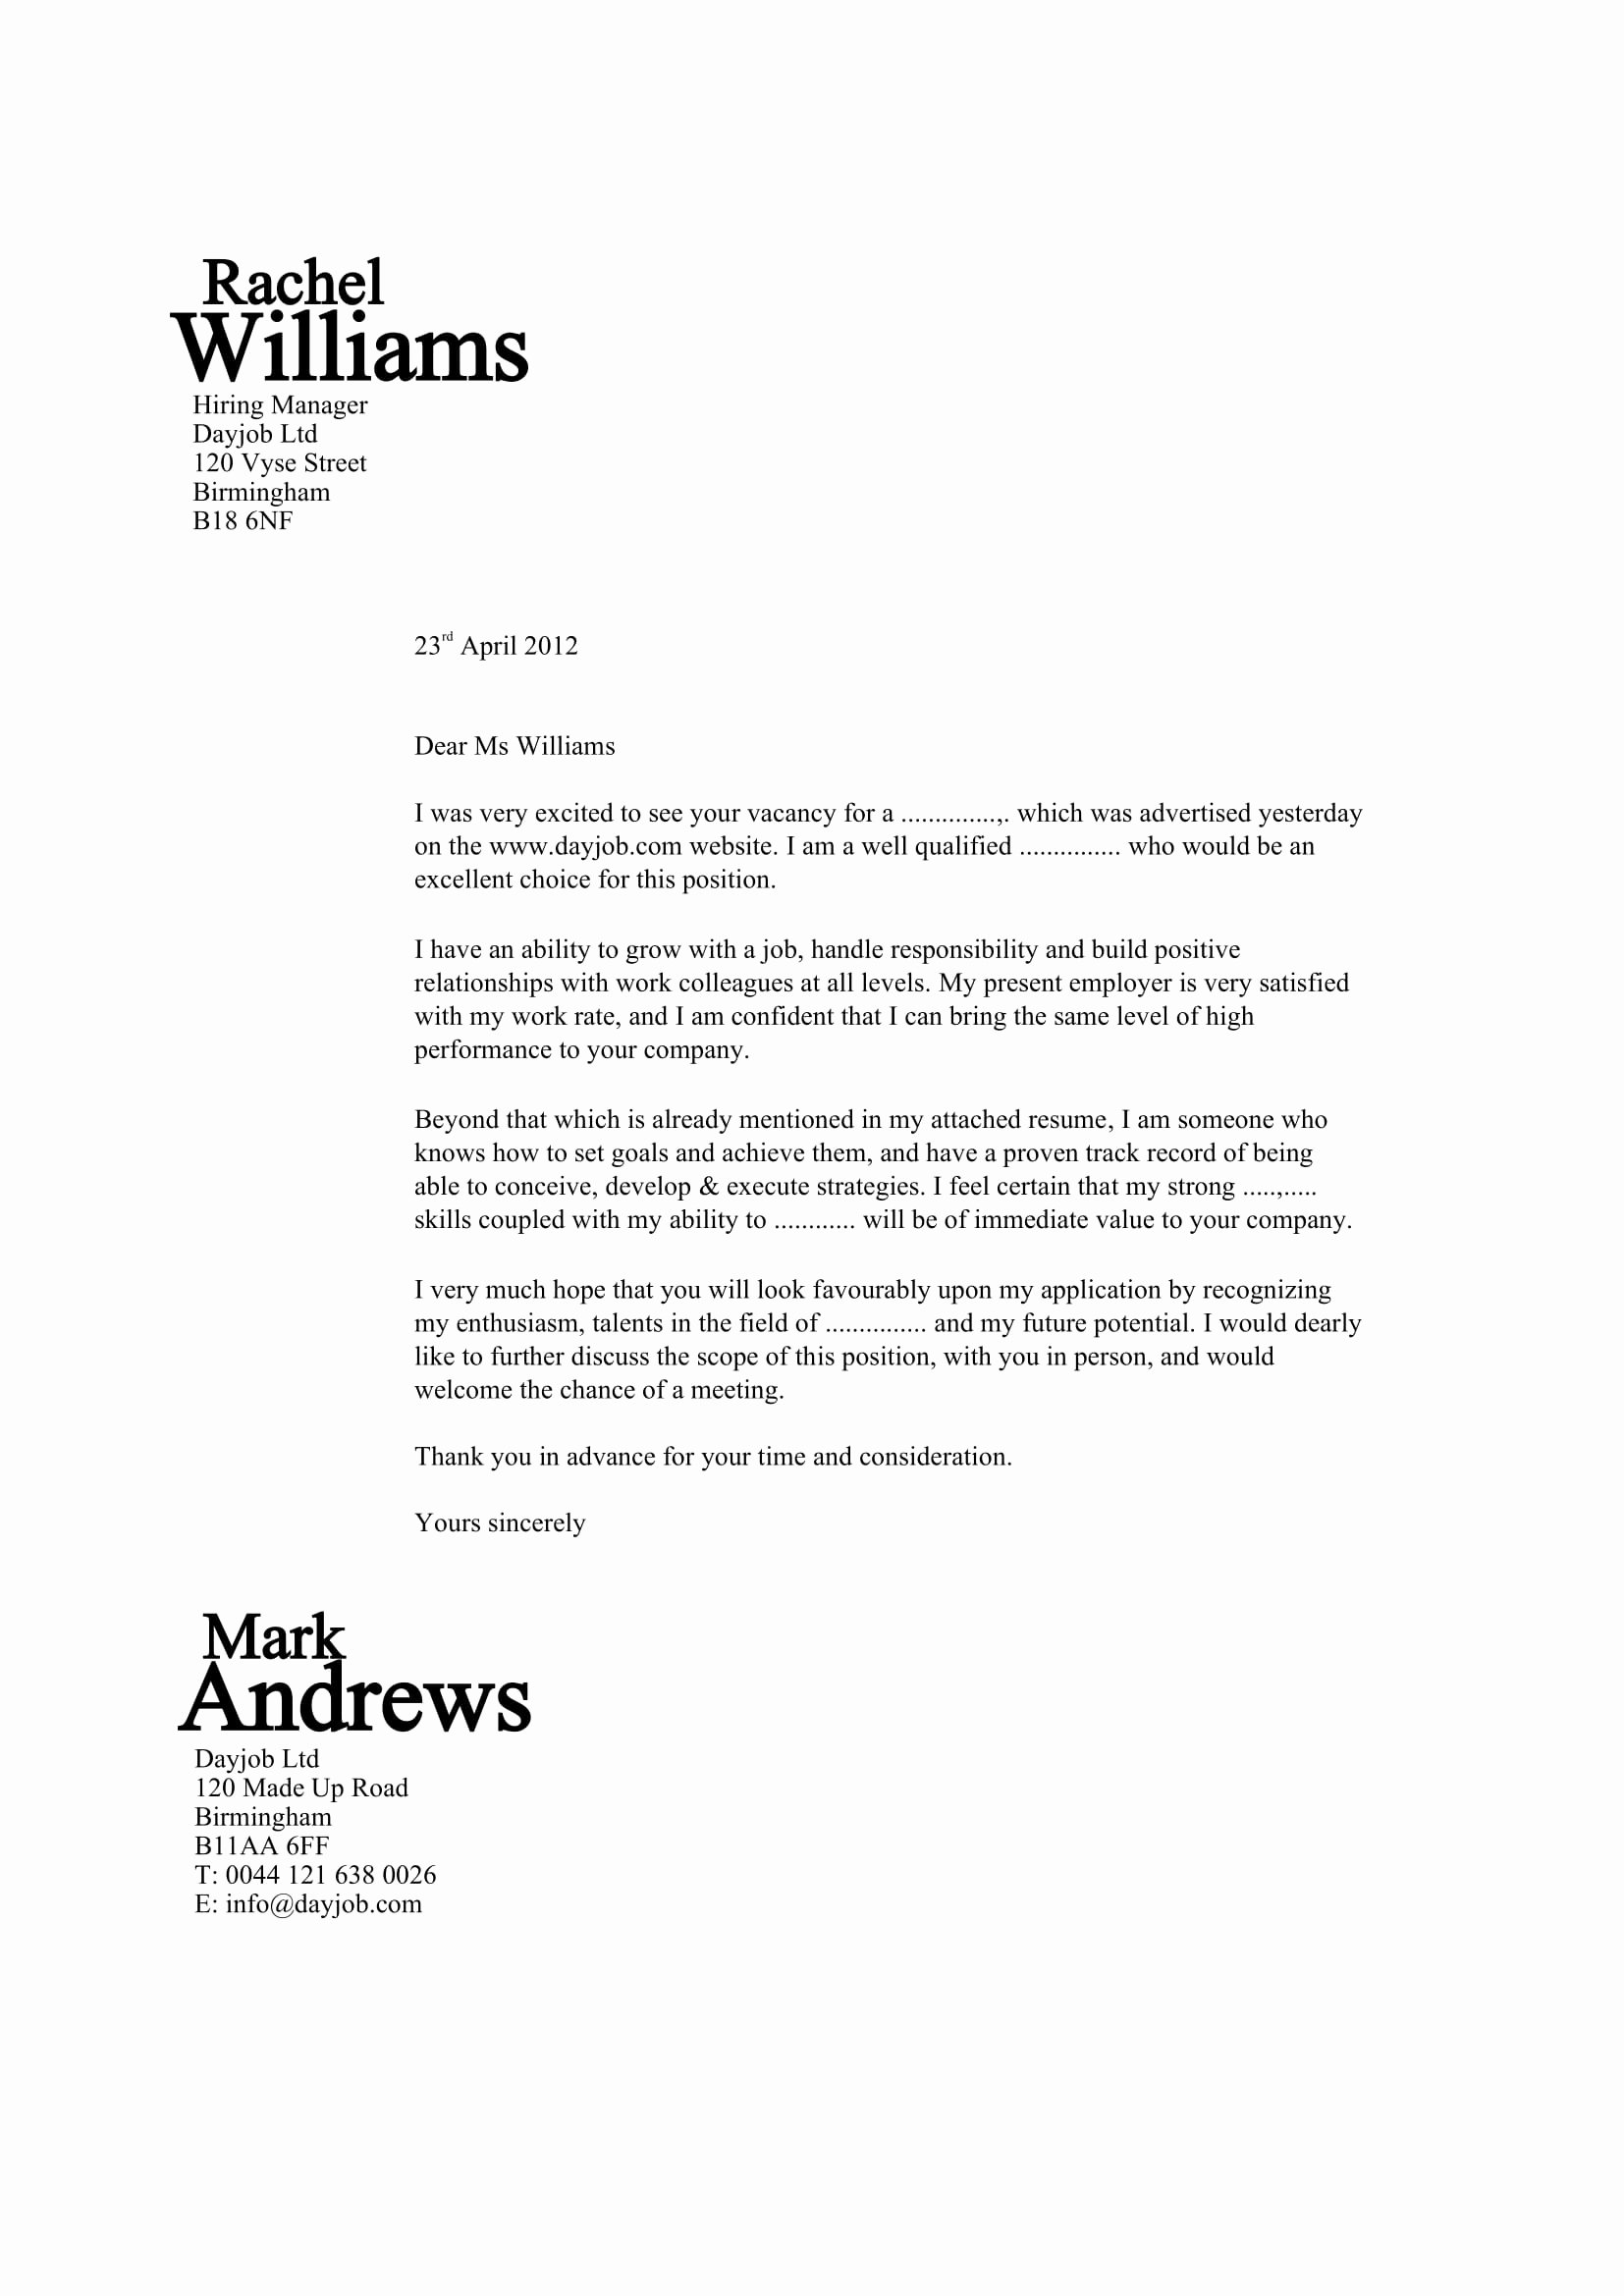 Best Cover Letter for Job Unique 32 Best Sample Cover Letter Examples for Job Applicants